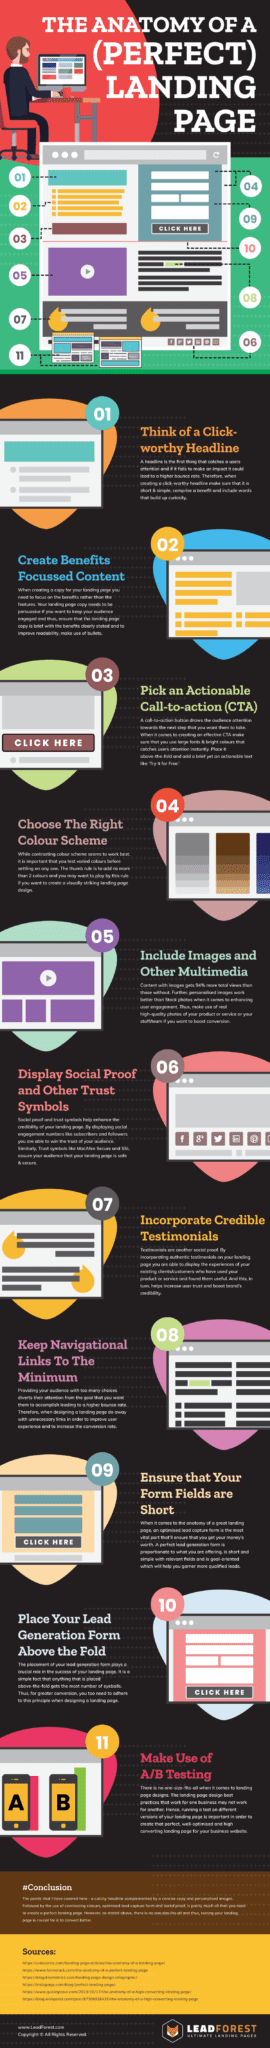 The Anatomy Of A (Perfect) WEBSITE LANDING PAGE [Infographic ...